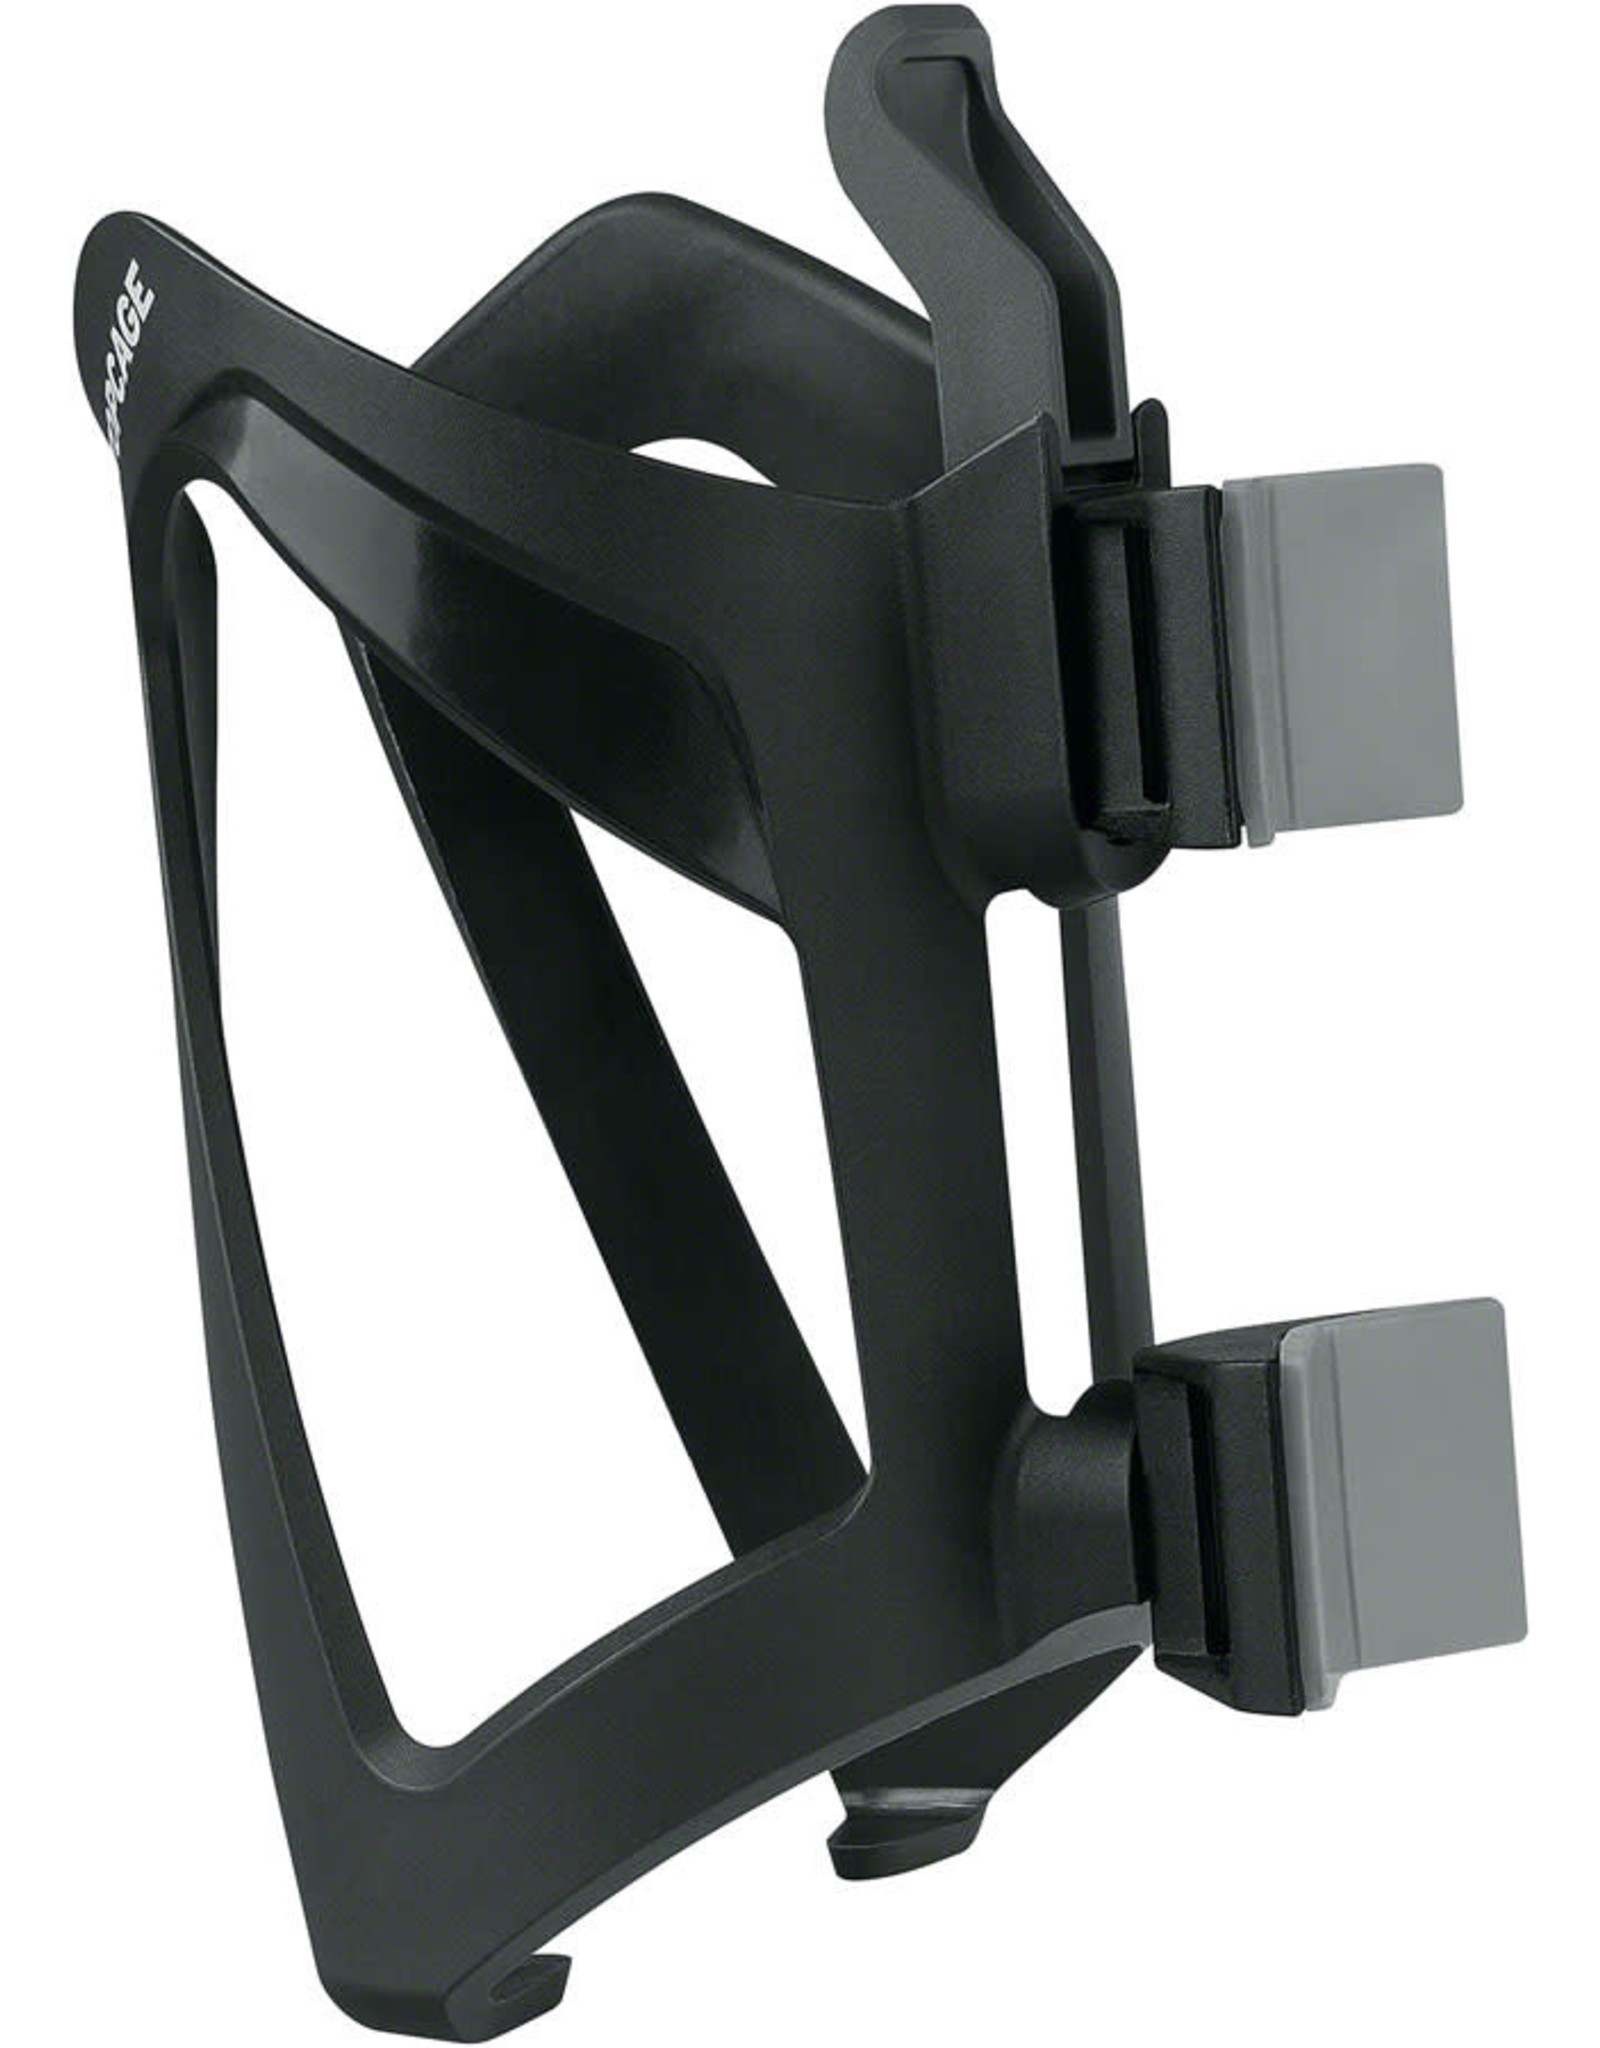 SKS SKS Anywhere Mount Topcage Water Bottle Cage - Strap-On, Black